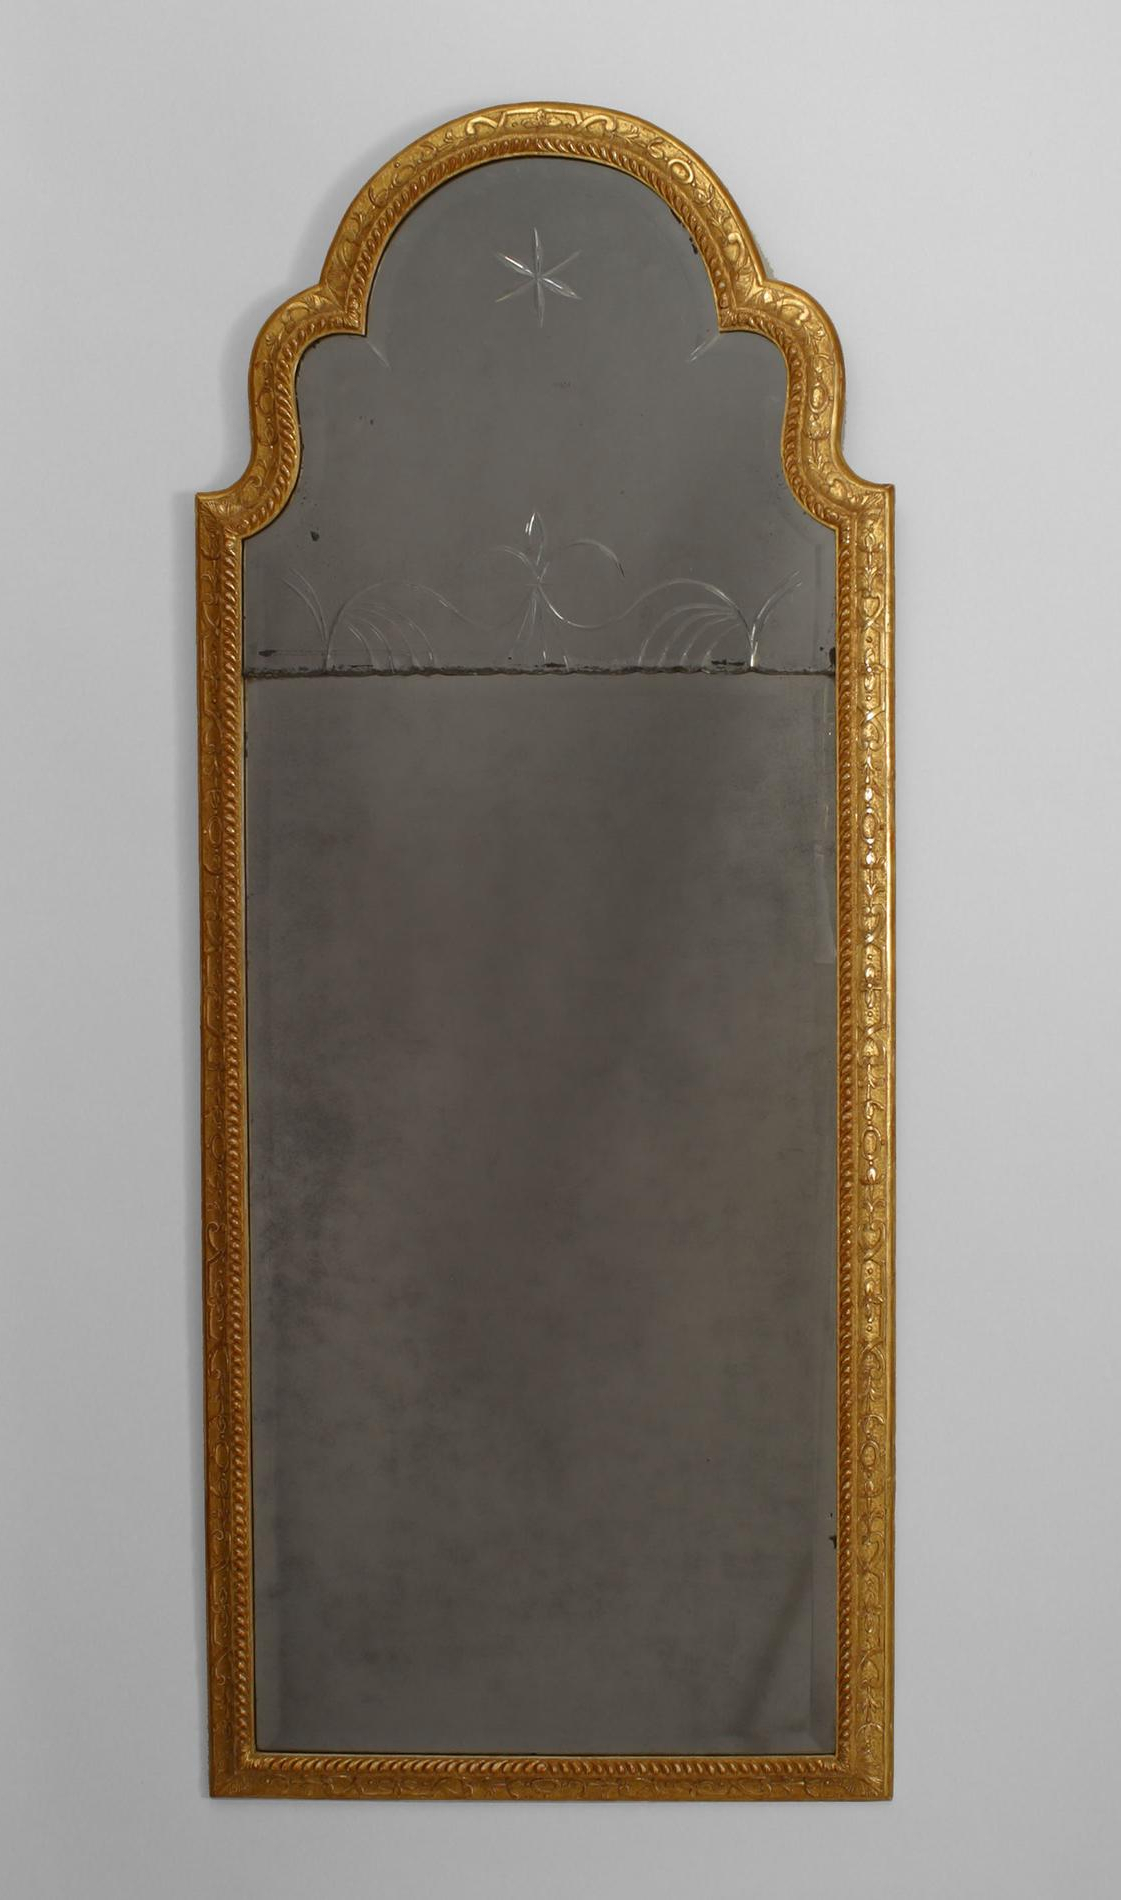 Newest Arch Top Vertical Wall Mirrors With Early 18Th C. English Queen Anne Gilt Wall Mirror, C (View 15 of 20)